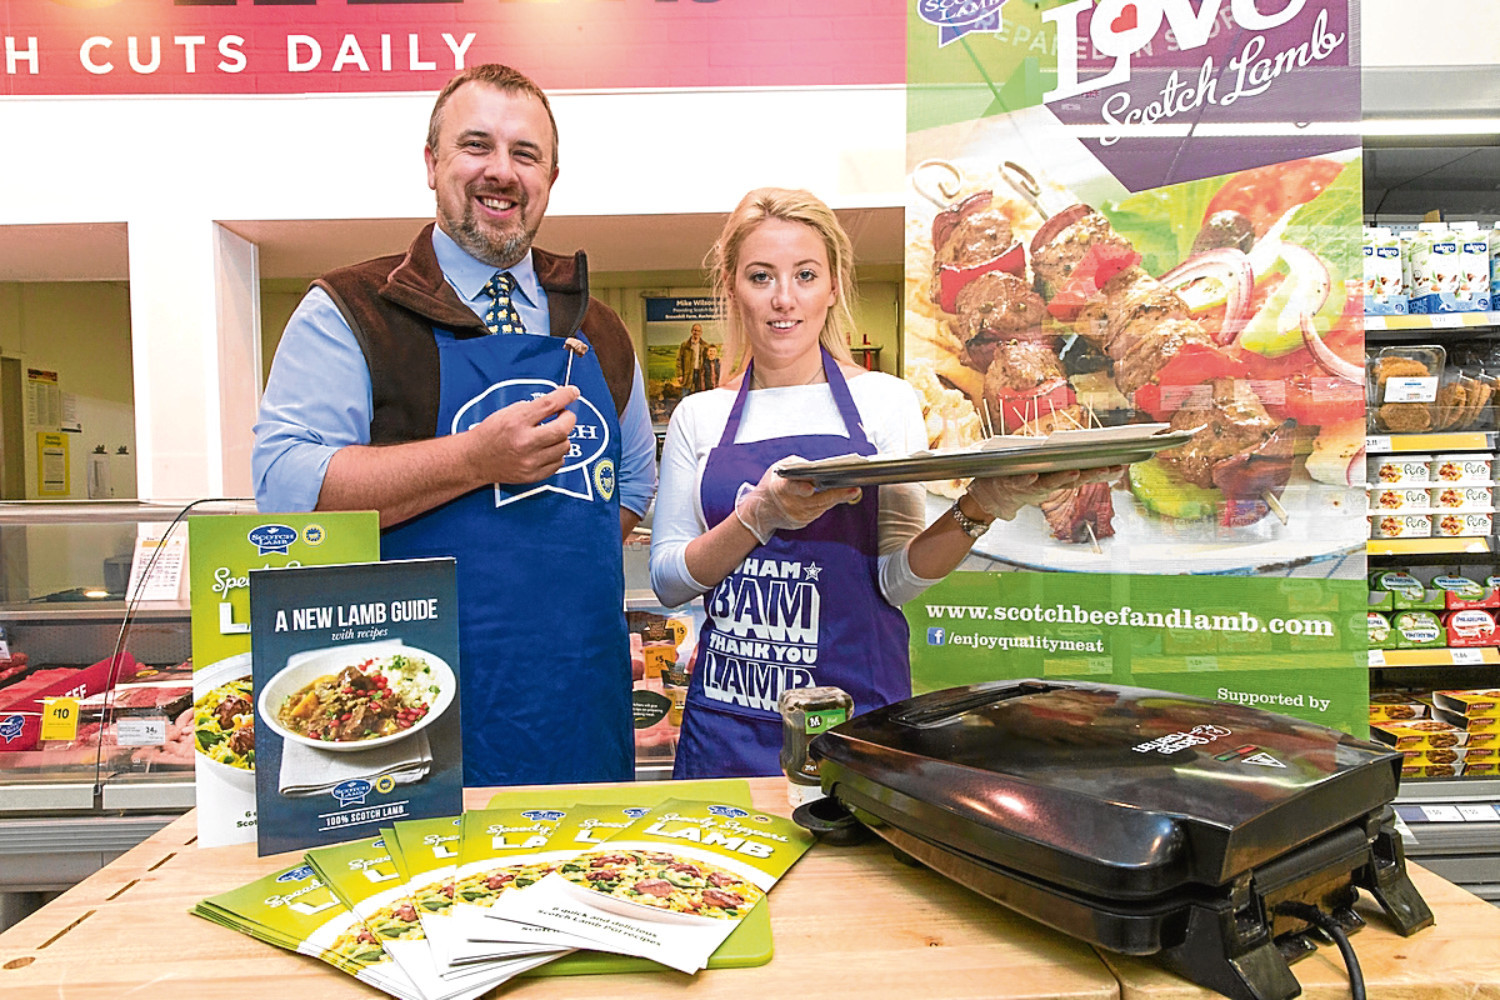 Aberdeenshire farmer John Fyall taking part in a tasting session as part of the campaign.